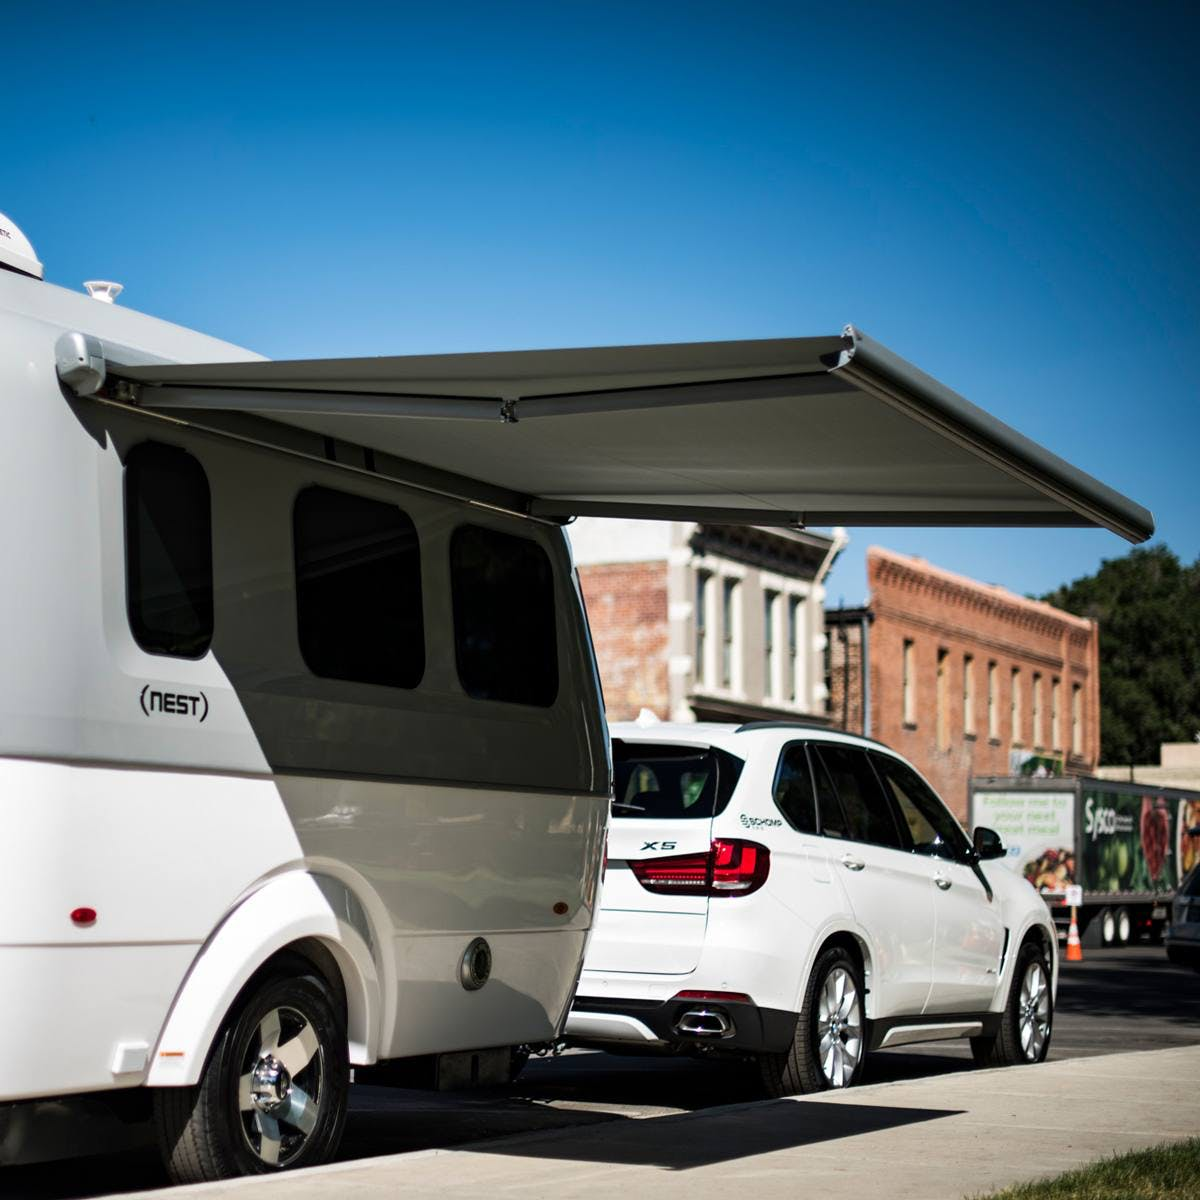 Airstream Travel Trailer Nest extended electric awning